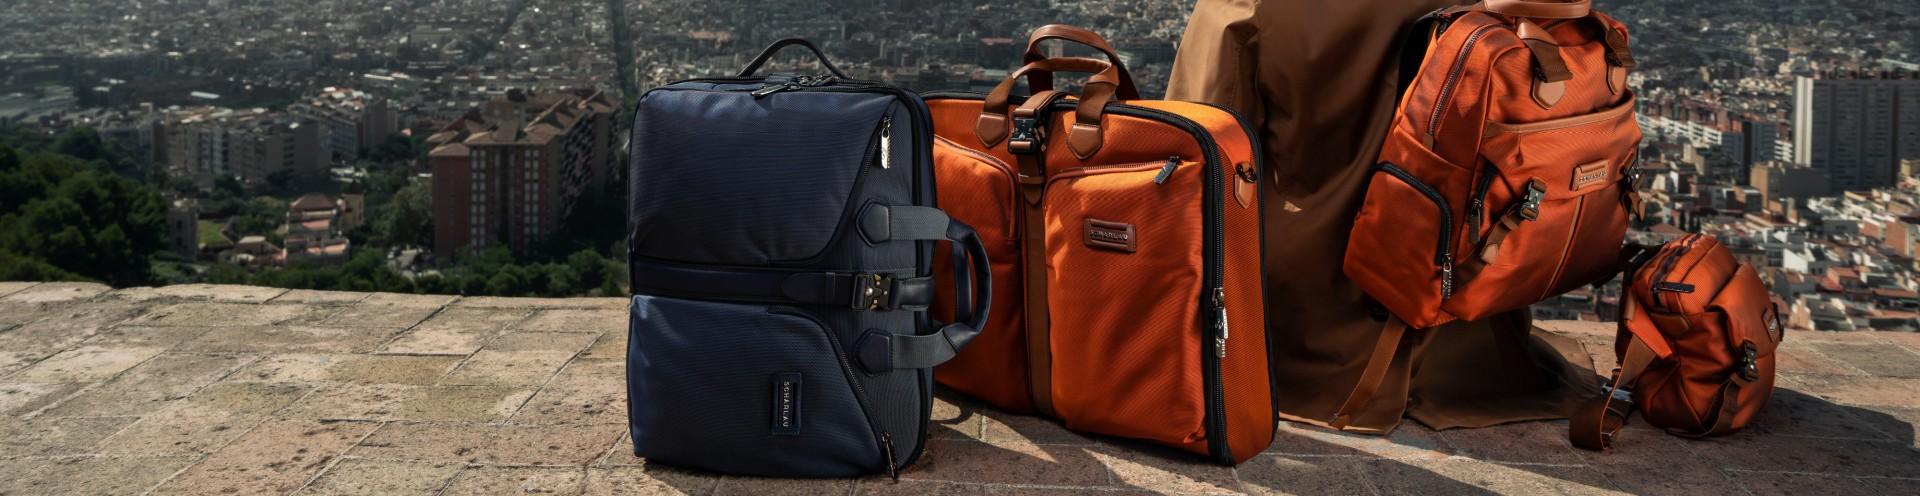 Exclusive Personalized Travel Bags